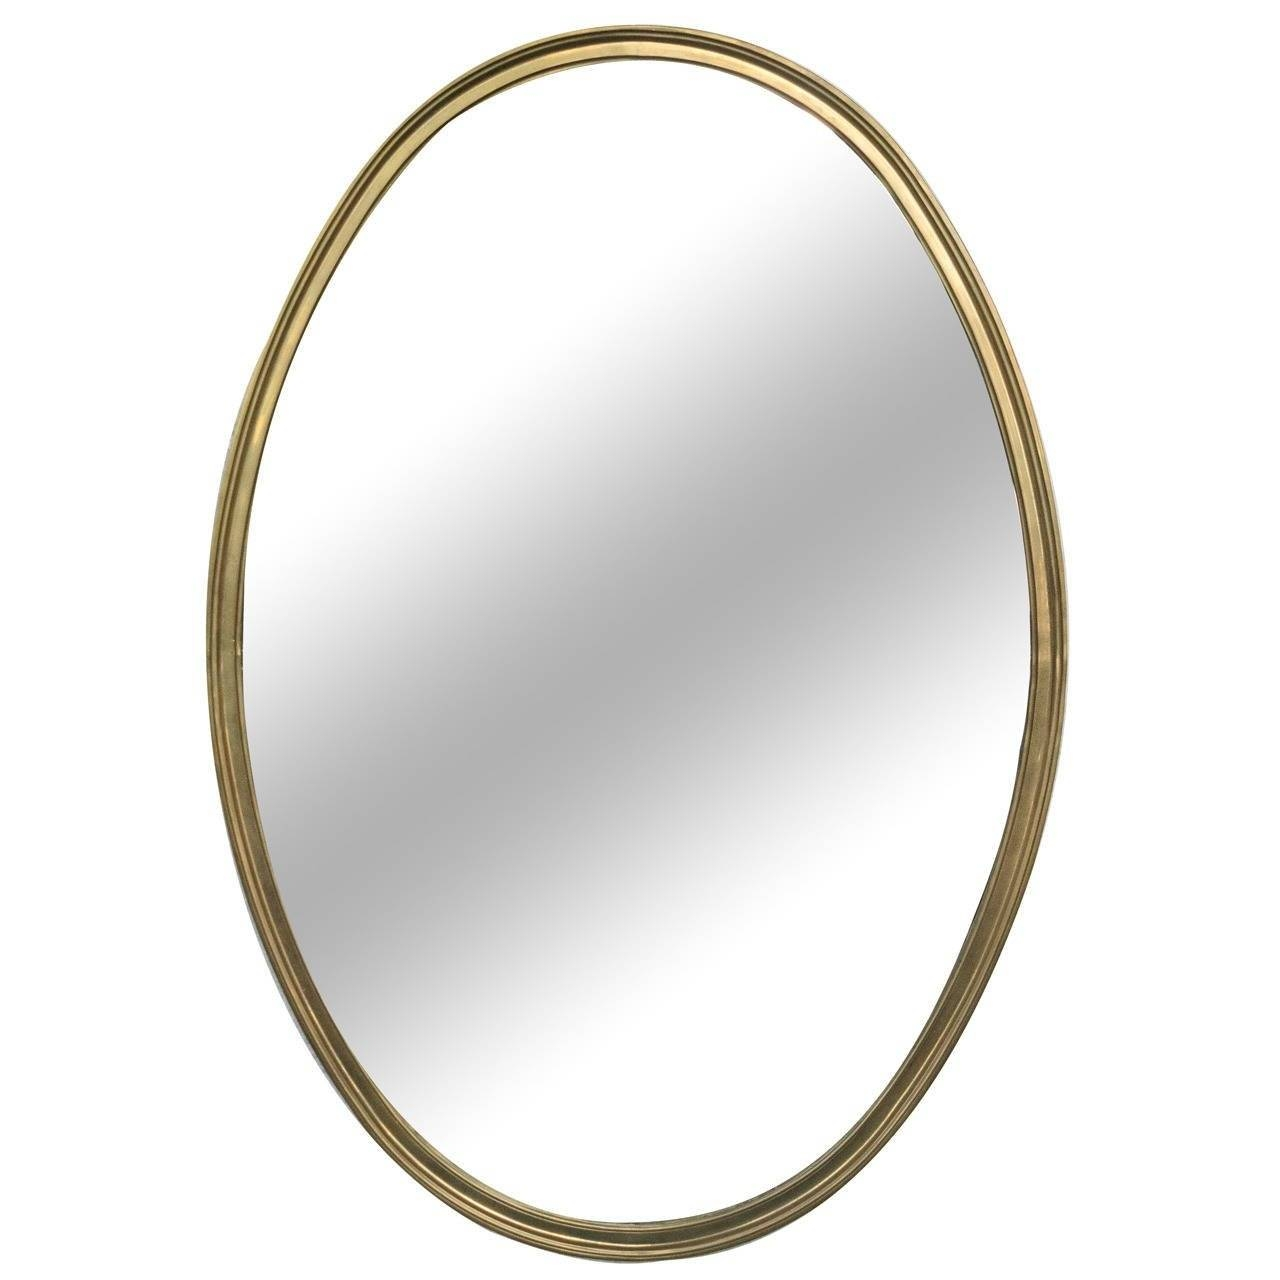 1950S French Brass Oval Shaped Mirror At 1Stdibs Throughout French Oval Mirrors (View 2 of 15)